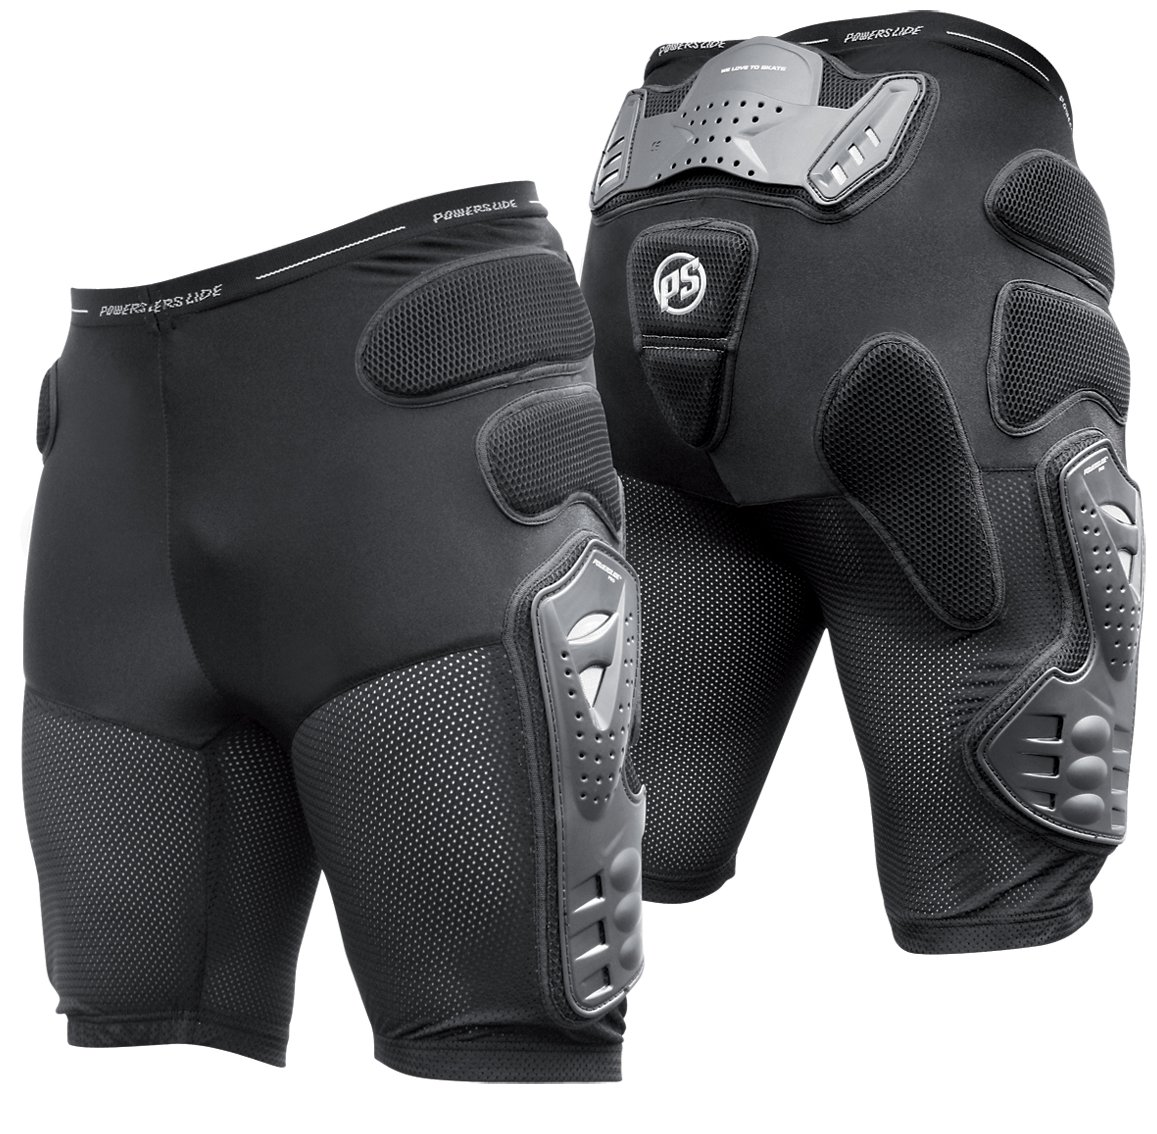 Powerslide Pro Mens Crash - L, Black by Powerslide